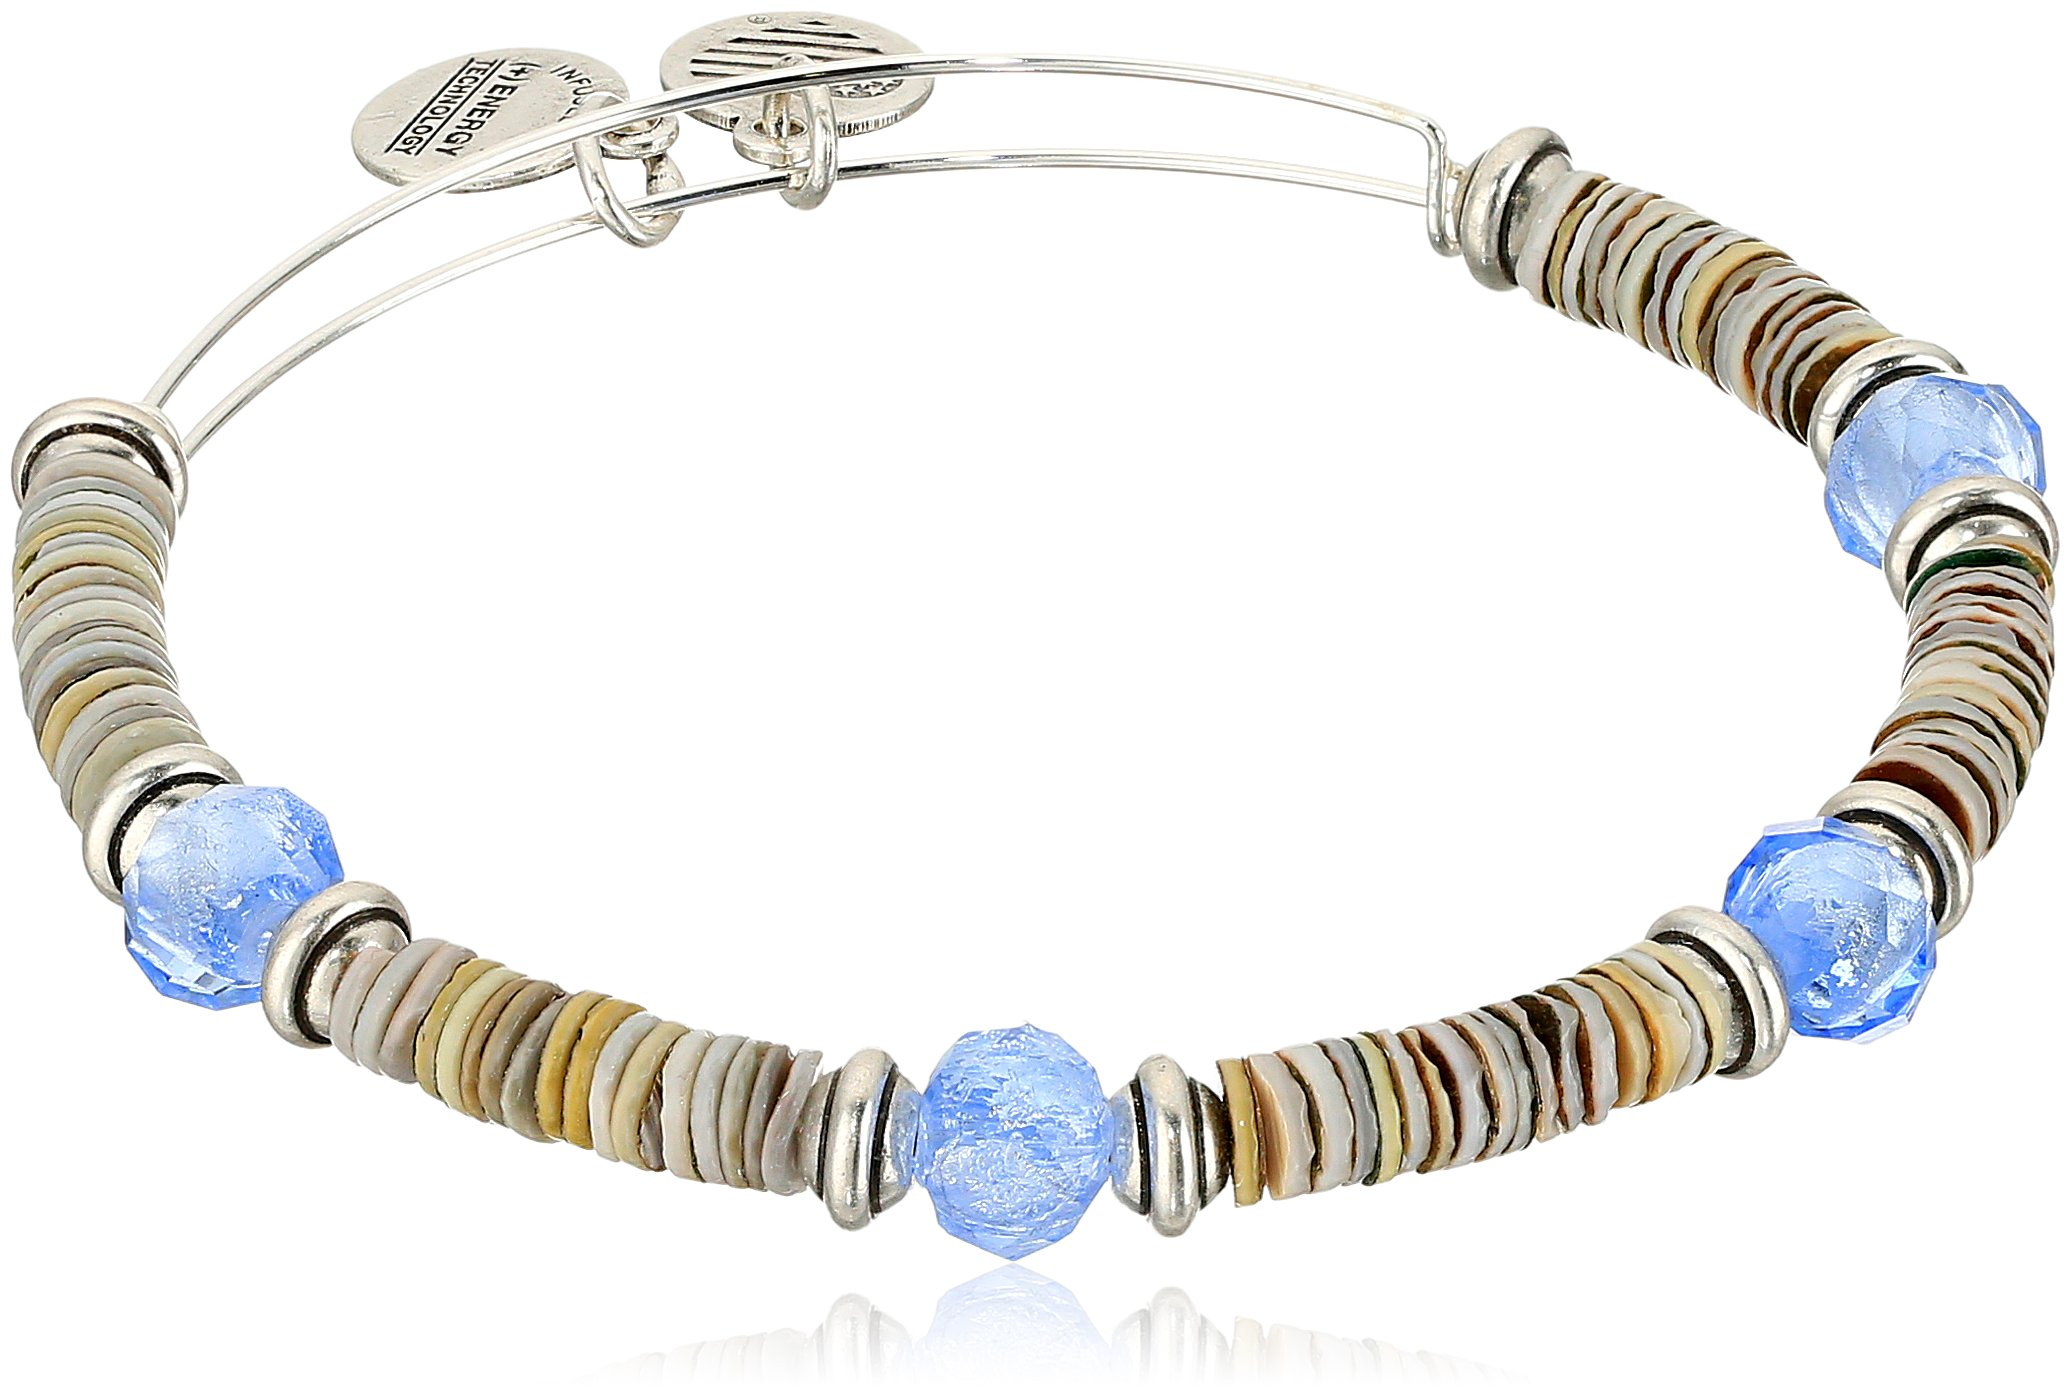 Alex and Ani Horizon, Sky/Rafaelian Silver Bangle Bracelet